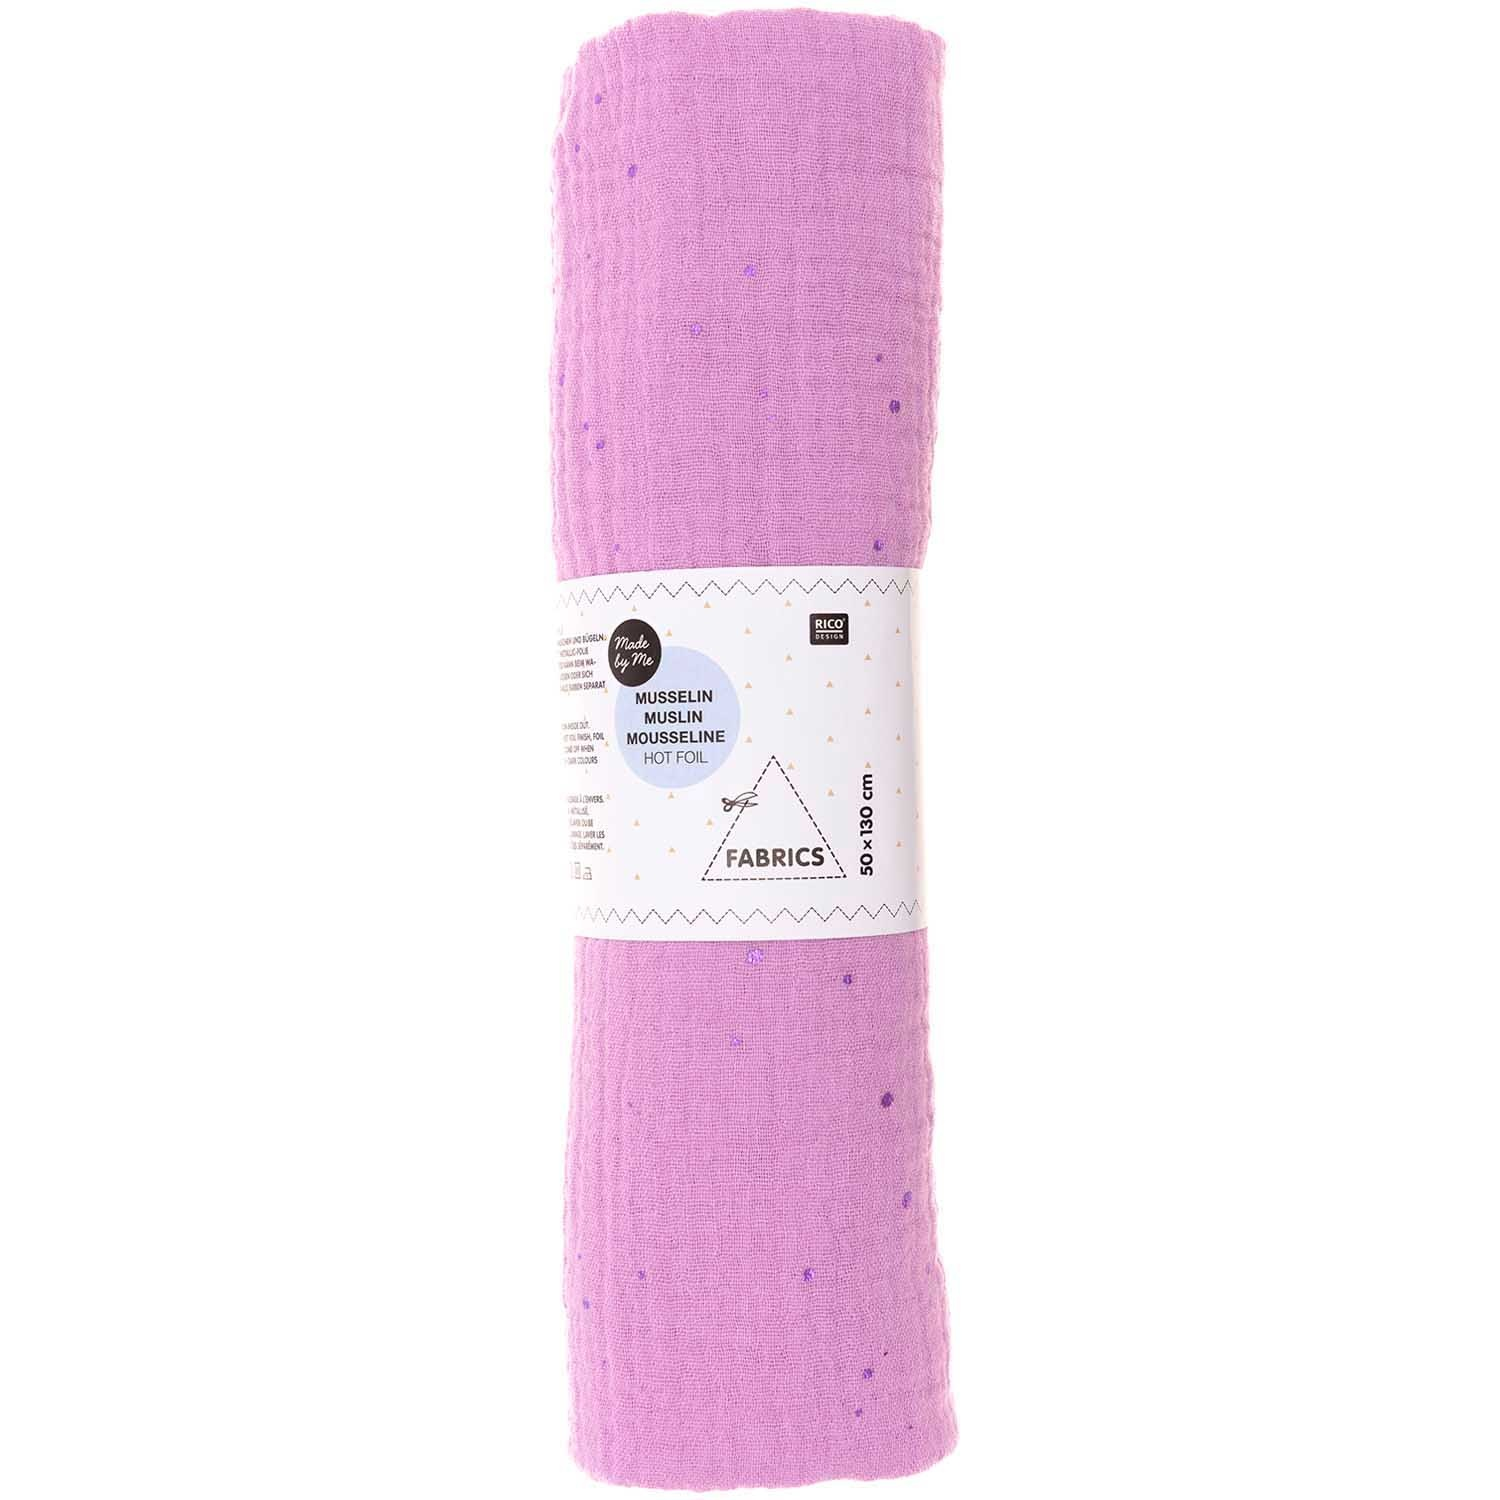 Rico NAY Crinkle muslin lilac, hot foil , piece 50 x 130 cm, 100% cotton, 130 g/sm